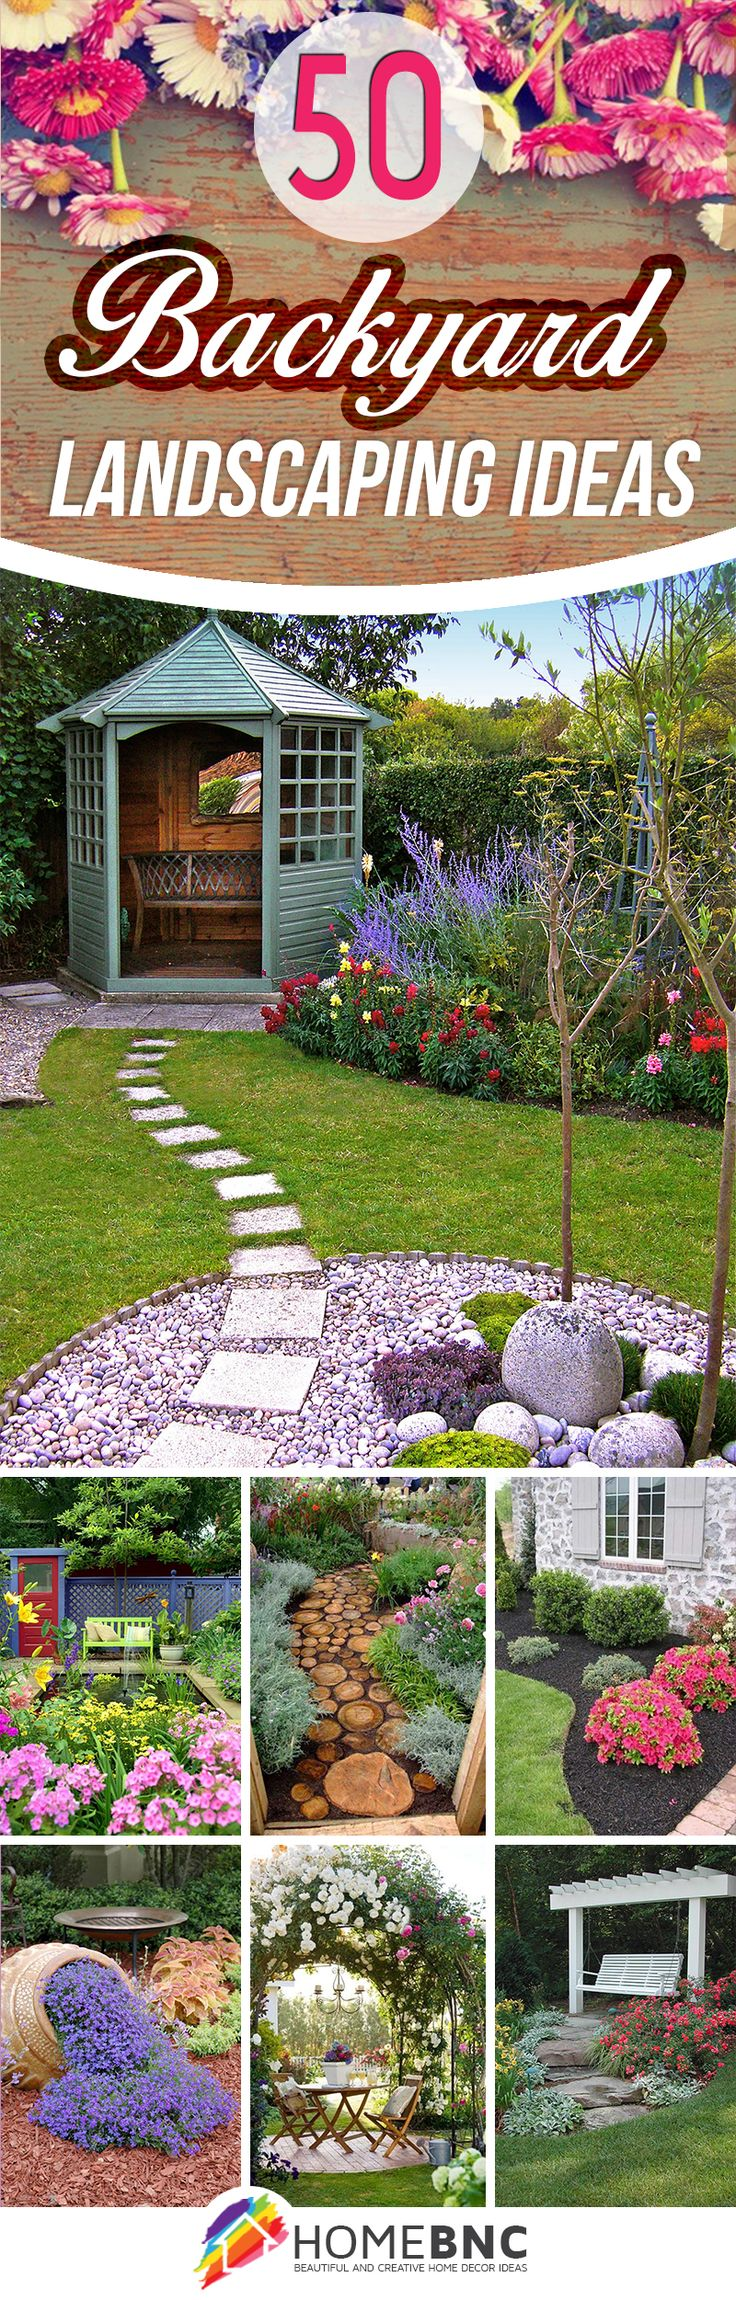 best 25+ cheap landscaping ideas ideas on pinterest | diy yard